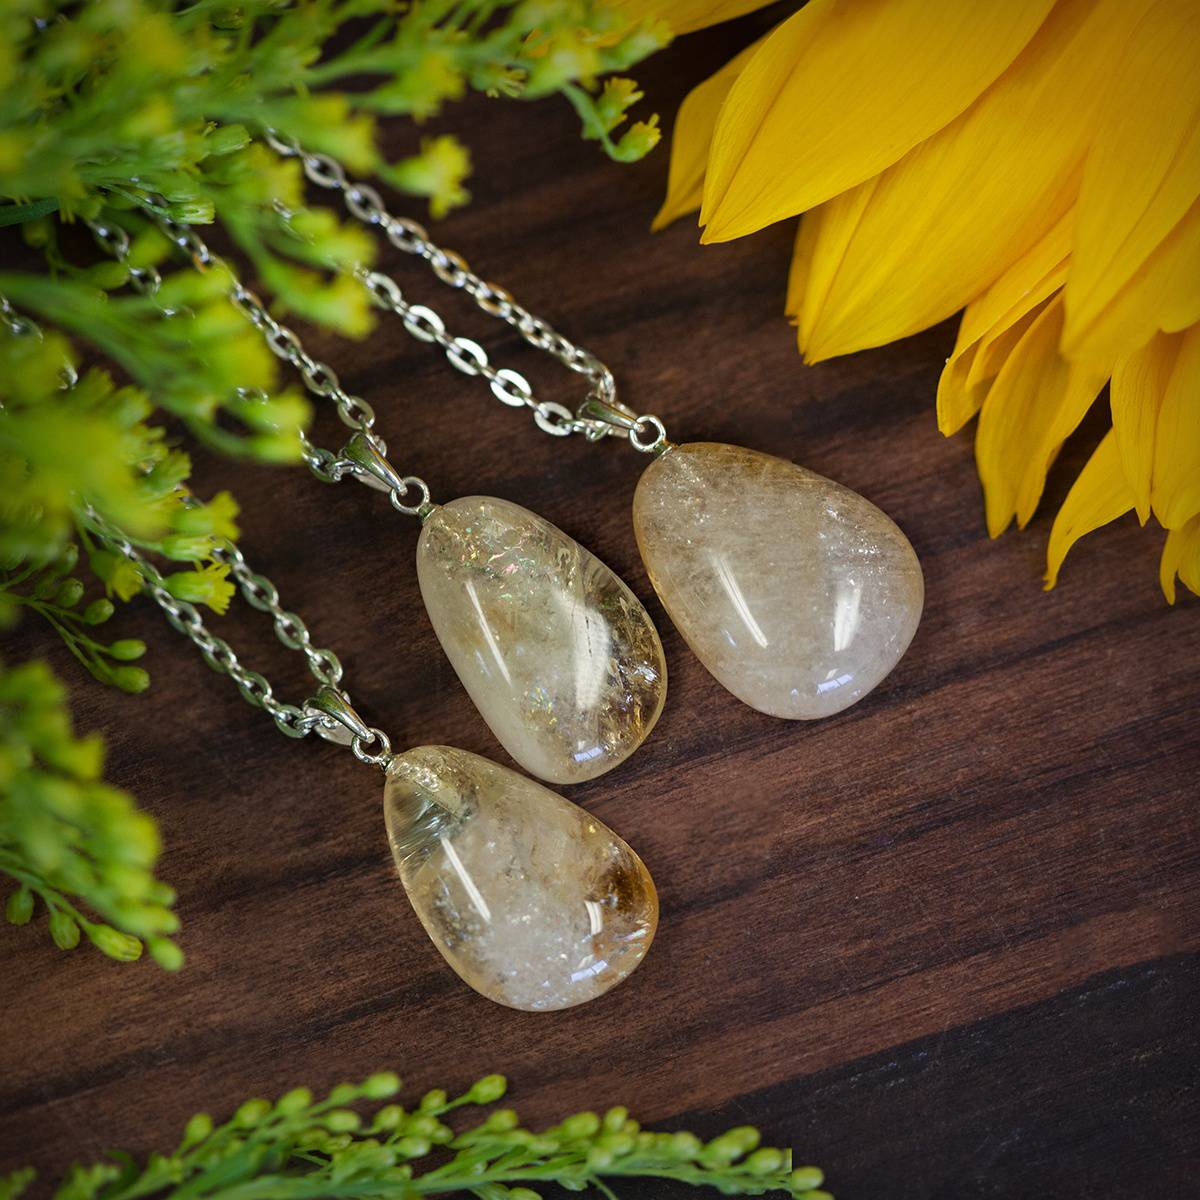 amplified manifestation pendants 6_7 featured